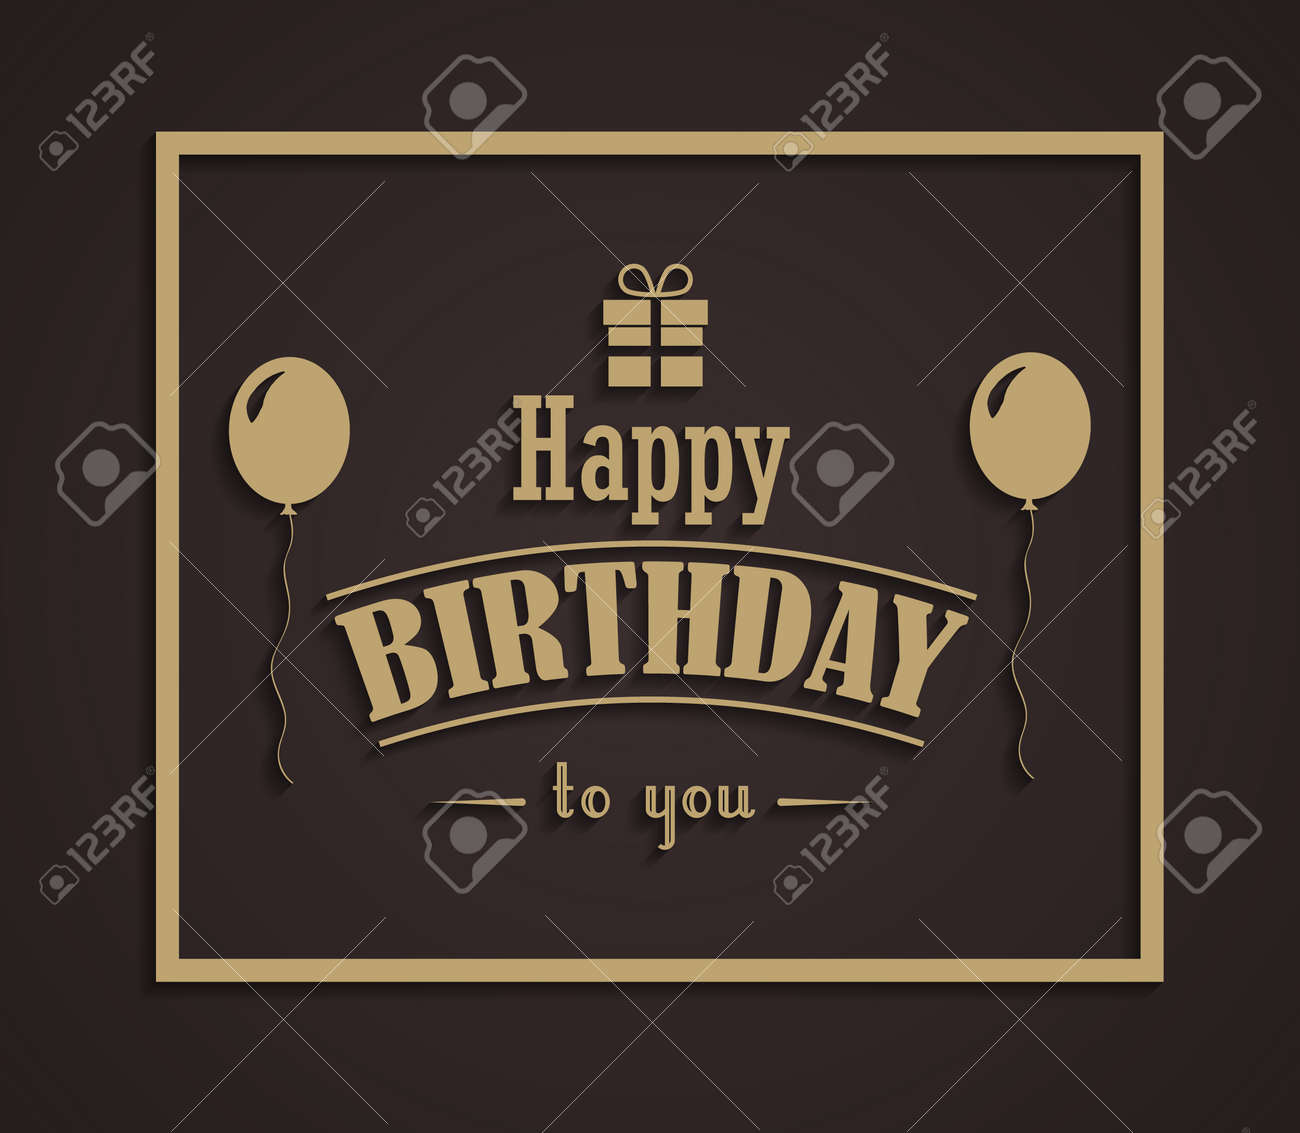 Happy birthday greeting card in vintage style in gold and chocolate happy birthday greeting card in vintage style in gold and chocolate colors stock vector 77457190 m4hsunfo